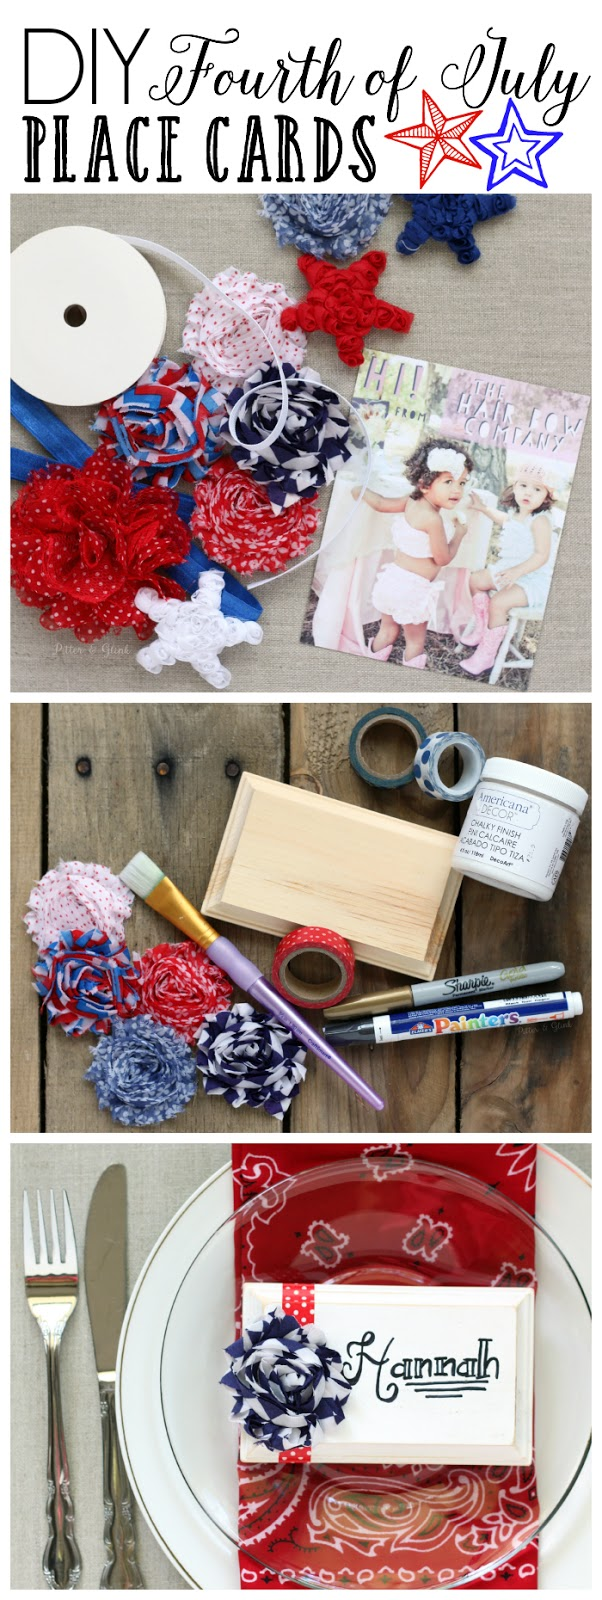 DIY Patriotic Place Cards--Perfect for your 4th of July gathering! www.pitterandglink.com #sponsored